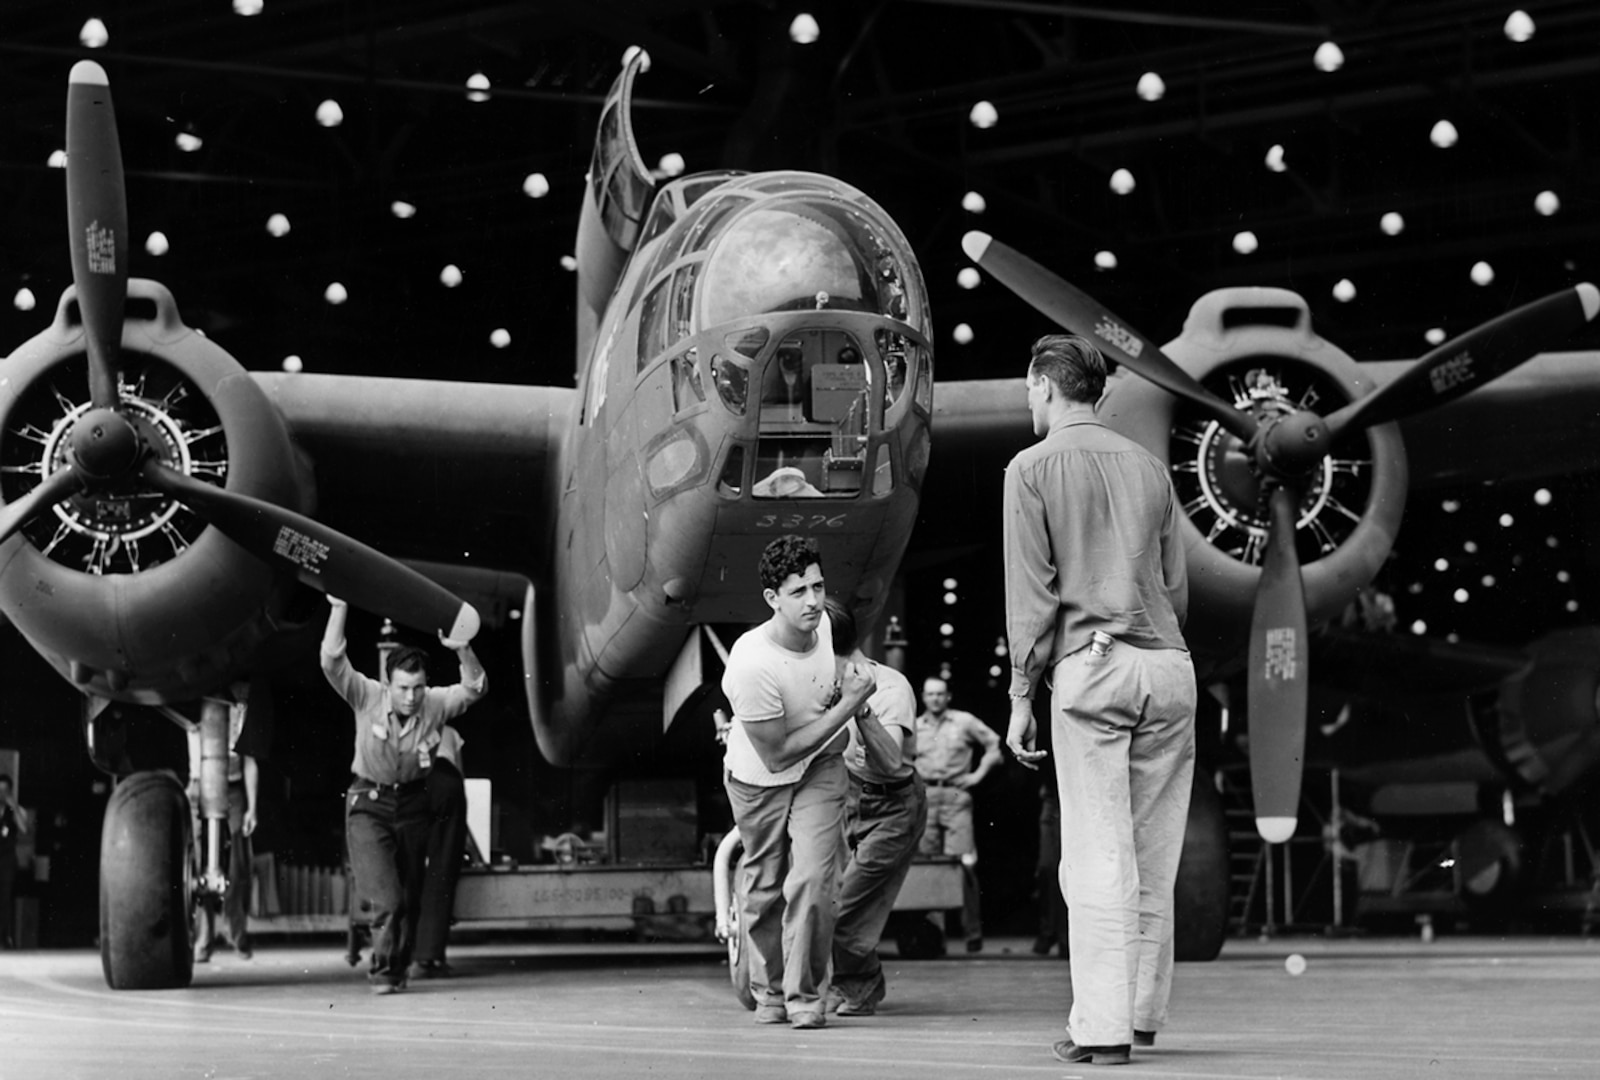 A Douglas A-20 attack bomber leaves the assembly line at the Long Beach, Calif., plant for transfer to the flight line and a test flight before delivery to the Army.